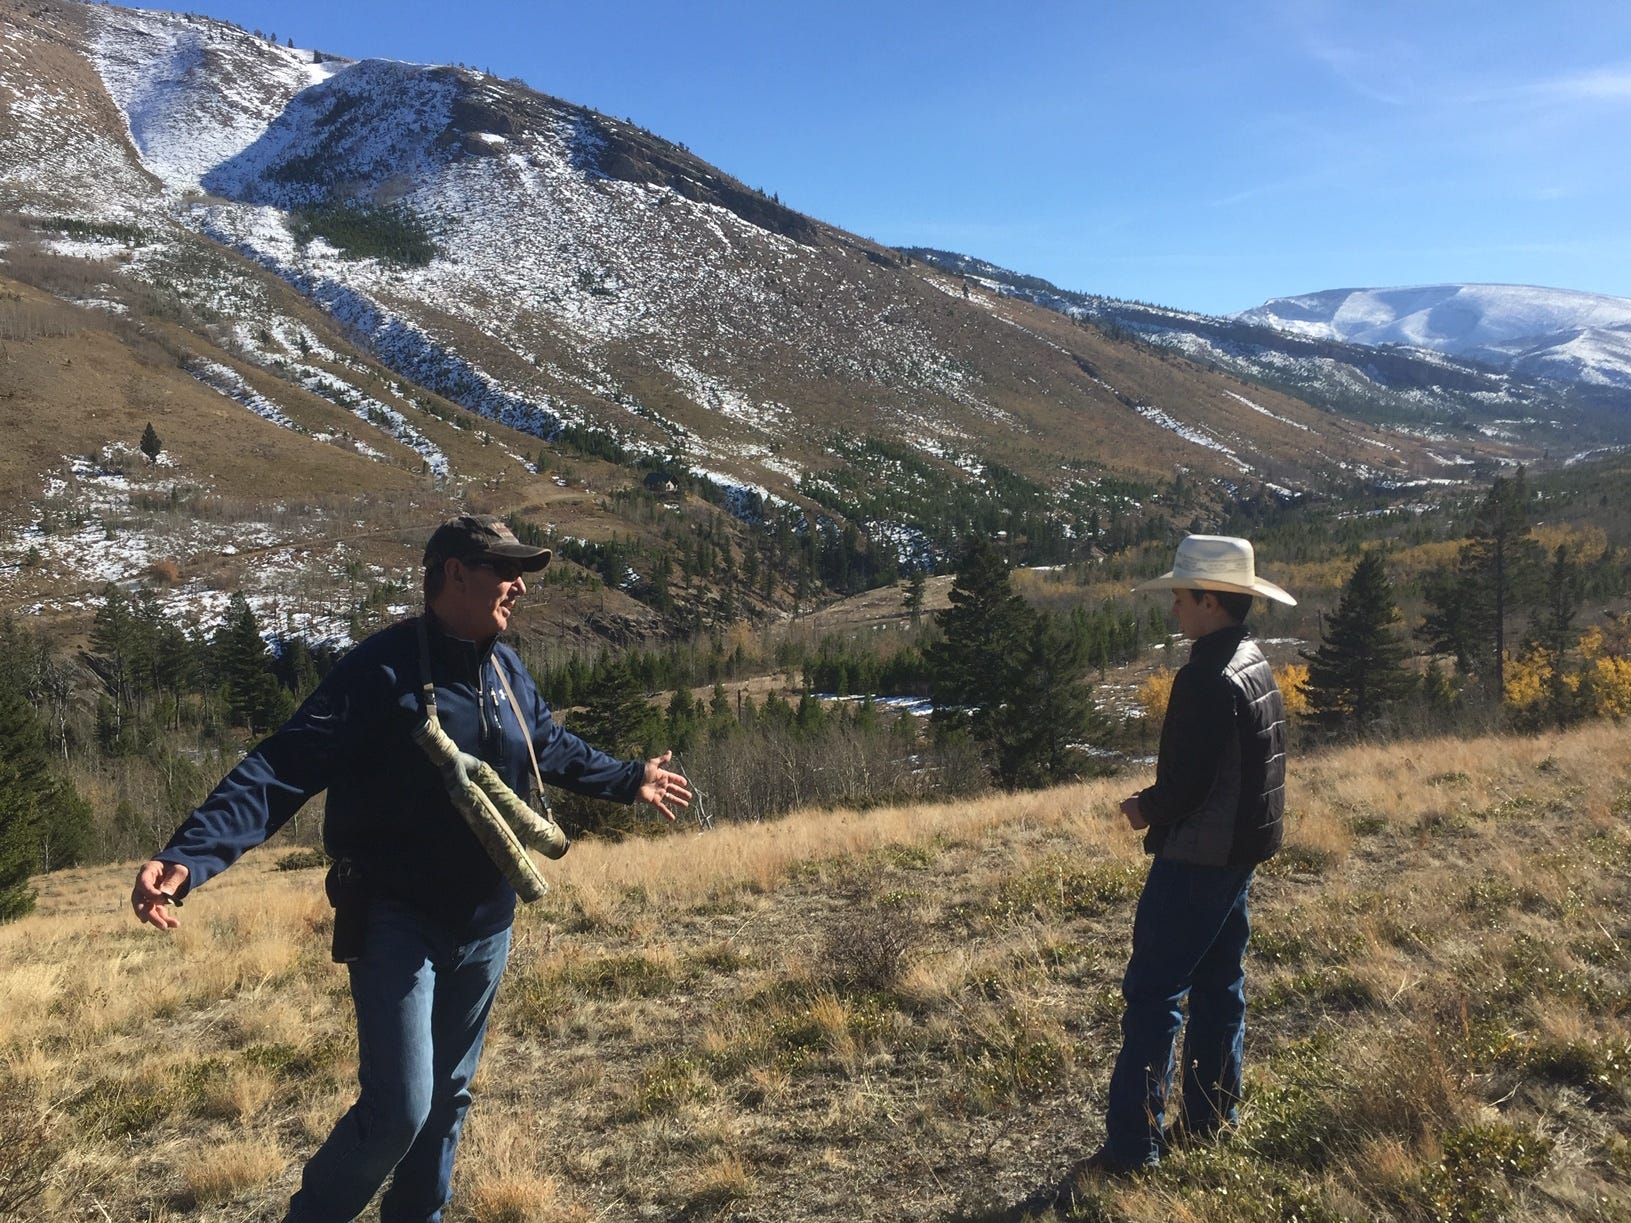 Mike Mueller of the Rocky Mountain Elk Foundation chats with Wyatt Barrett on the Barrett property west of Augusta. The area is prime elk habitat, and protecting it is a national priority for the foundation.